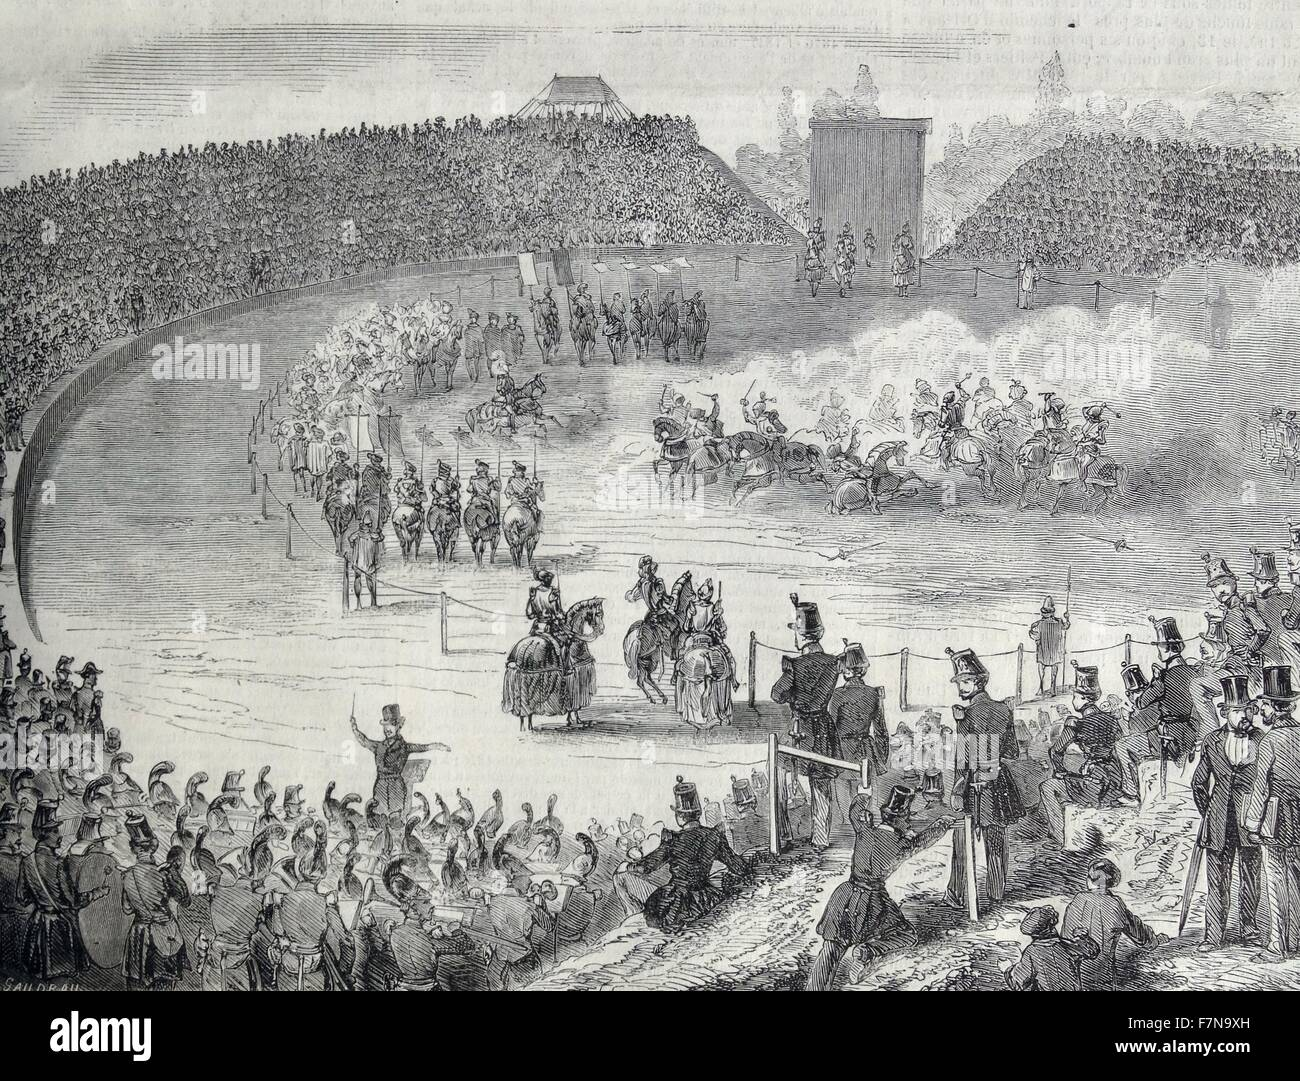 Crowd watches a military spectacle or show in France 1860 Stock Photo